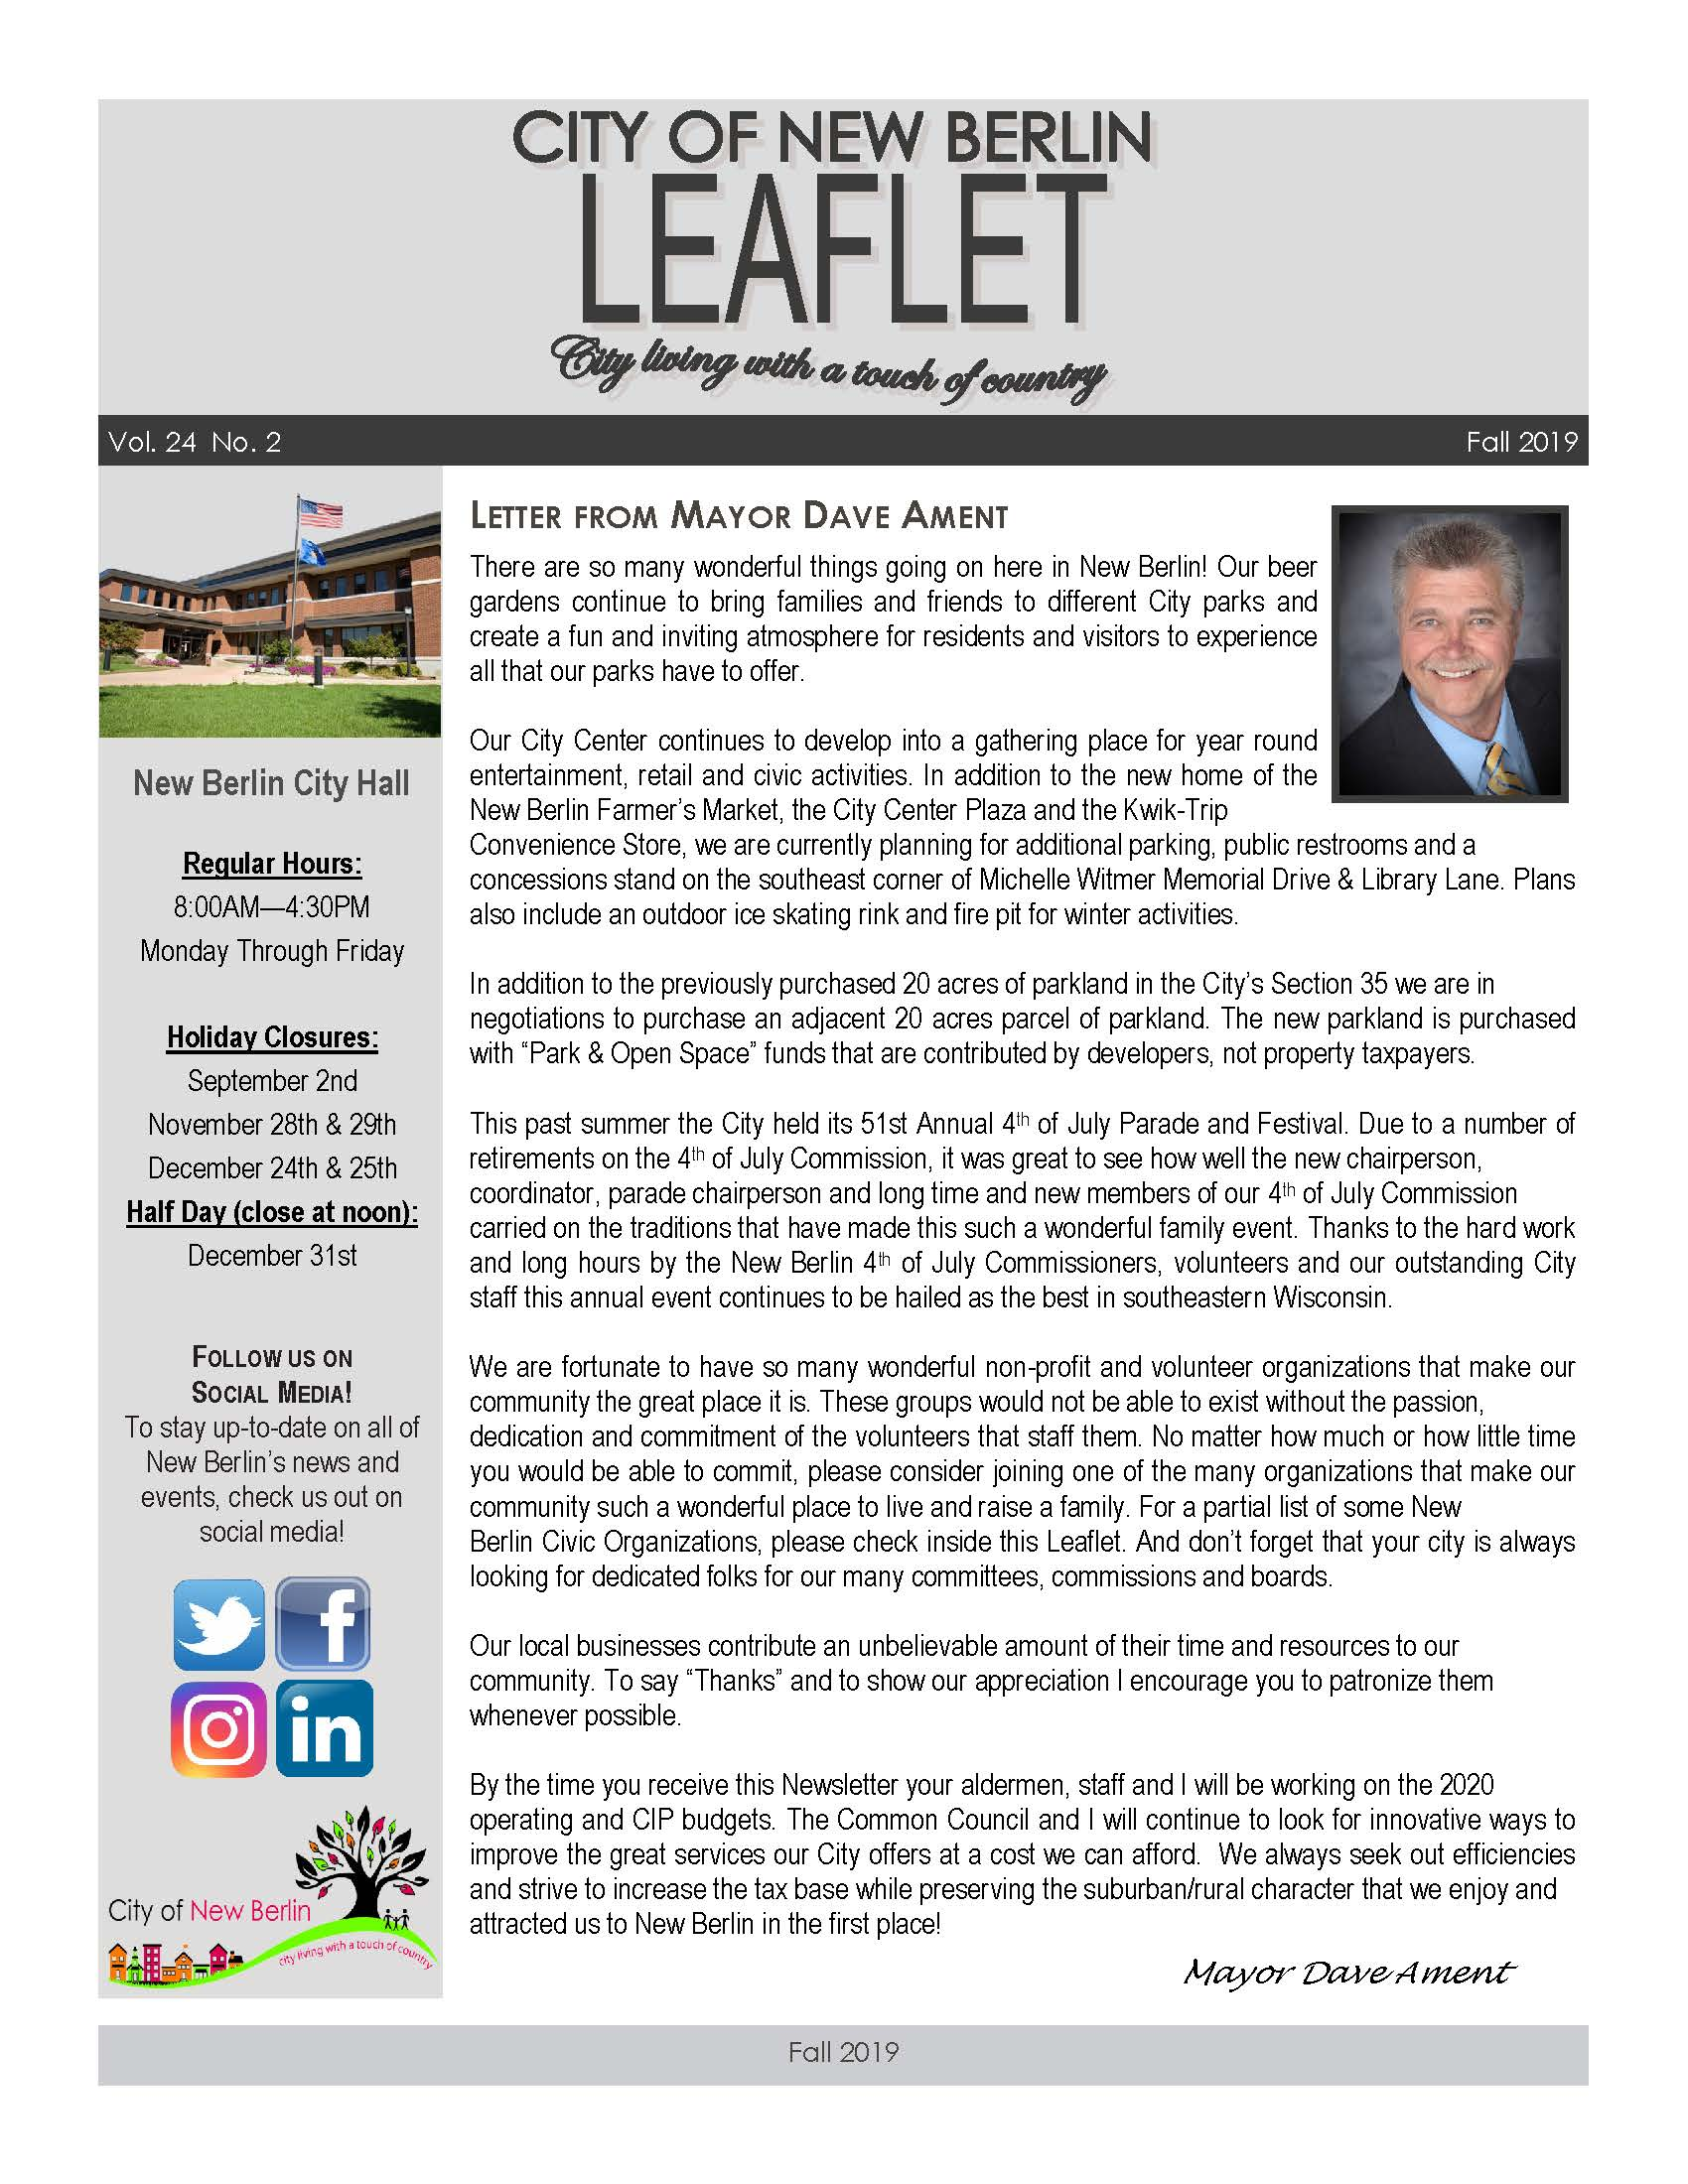 2019 Fall Leaflet FINAL SENT TO REC_Page_1